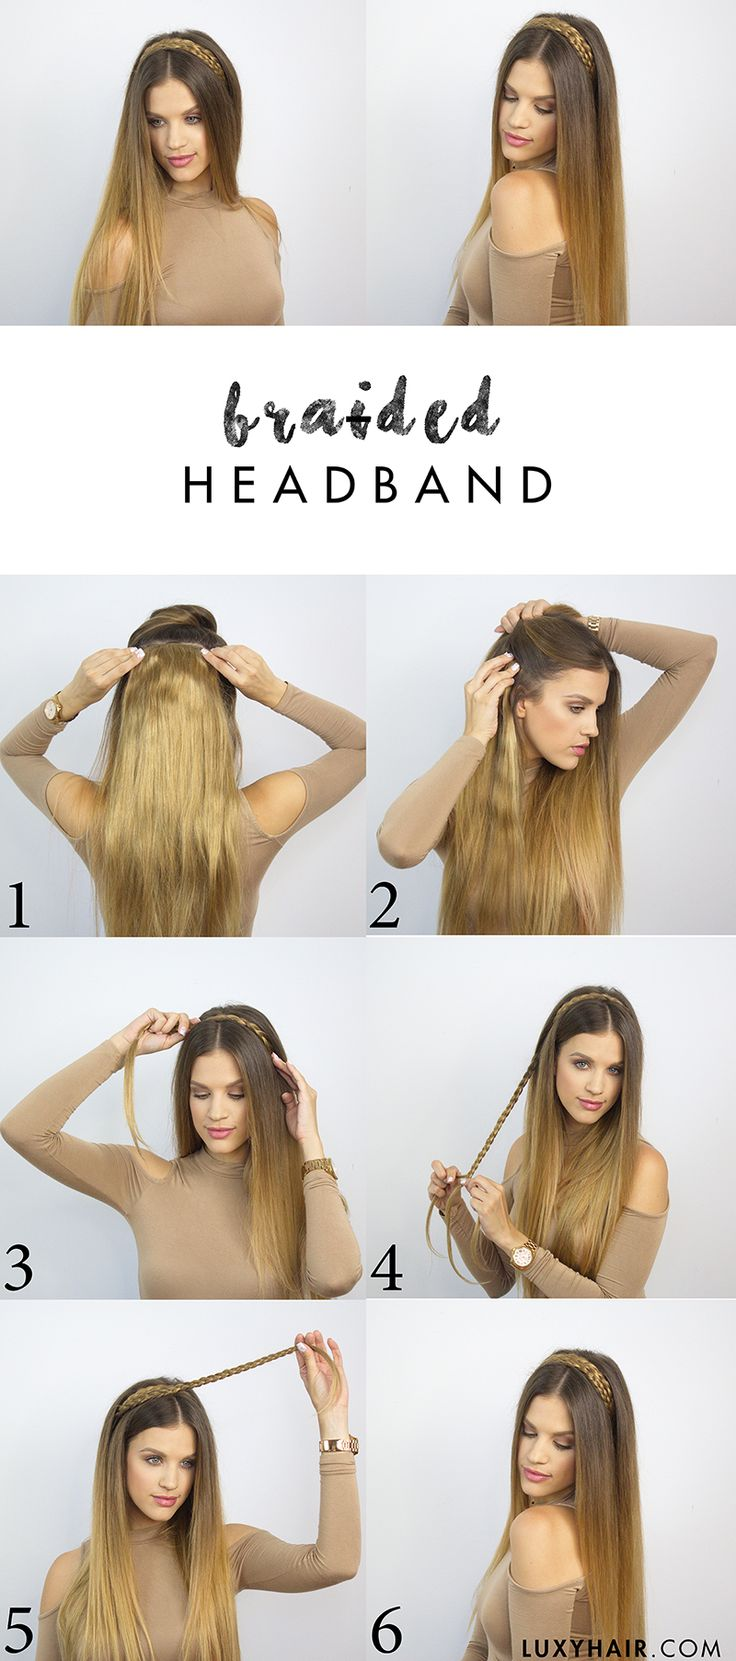 374 Best Hair Tutorials How To Images On Pinterest